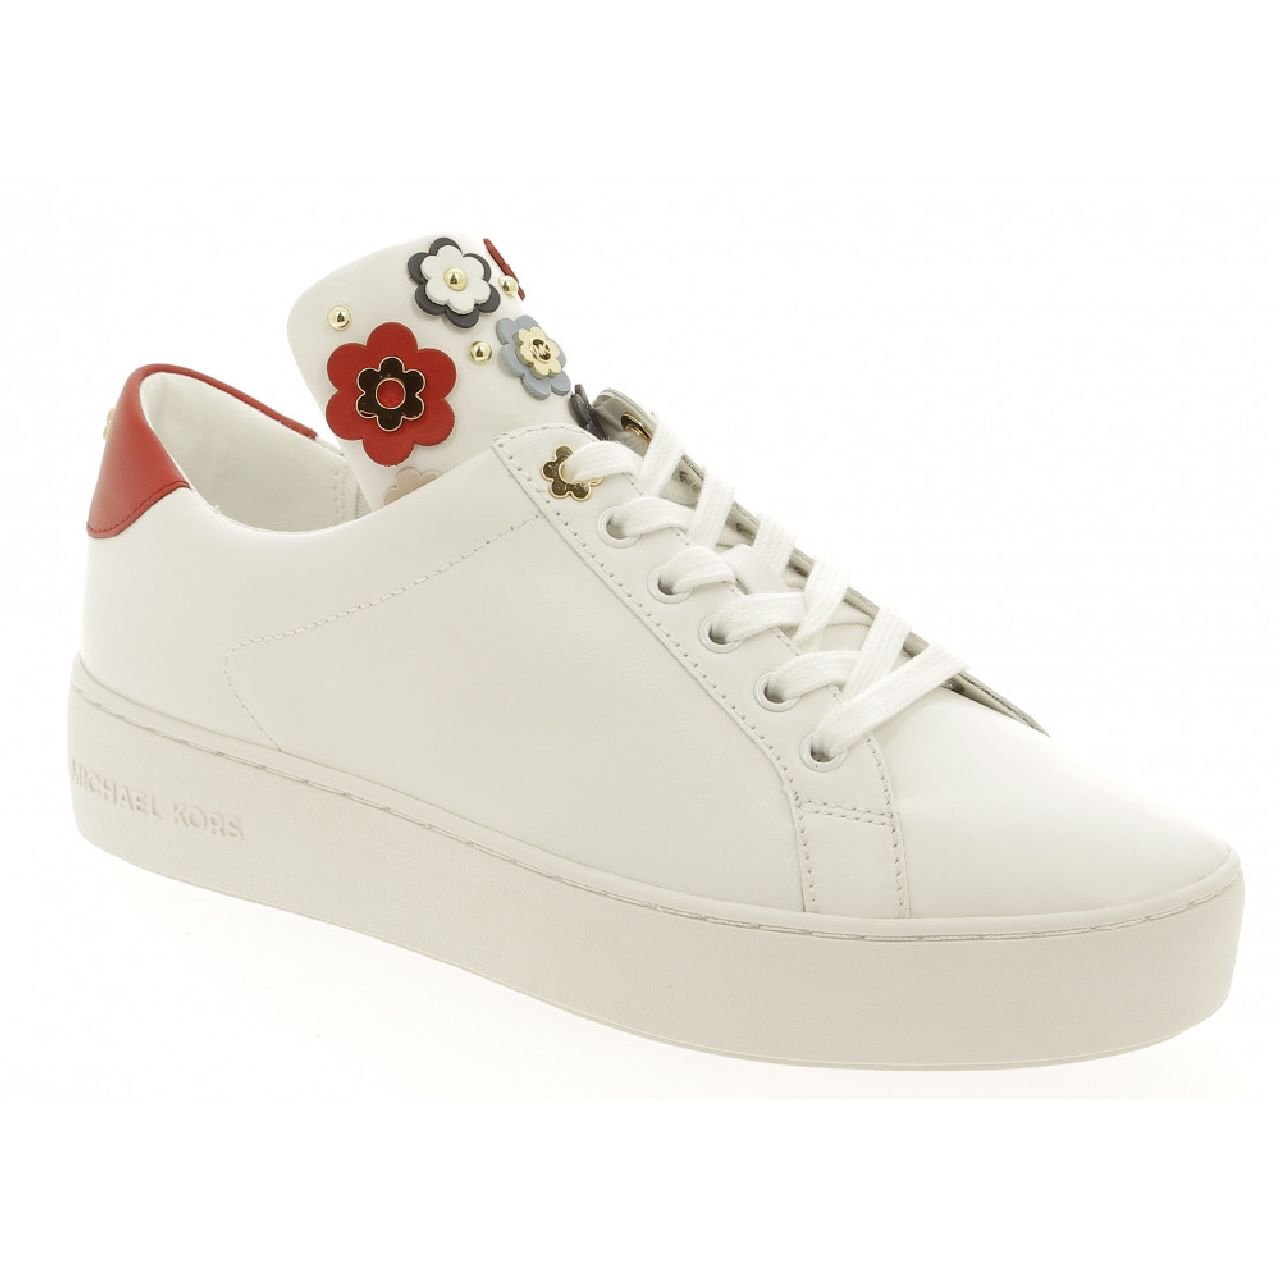 Sneakers dames Michael Kors